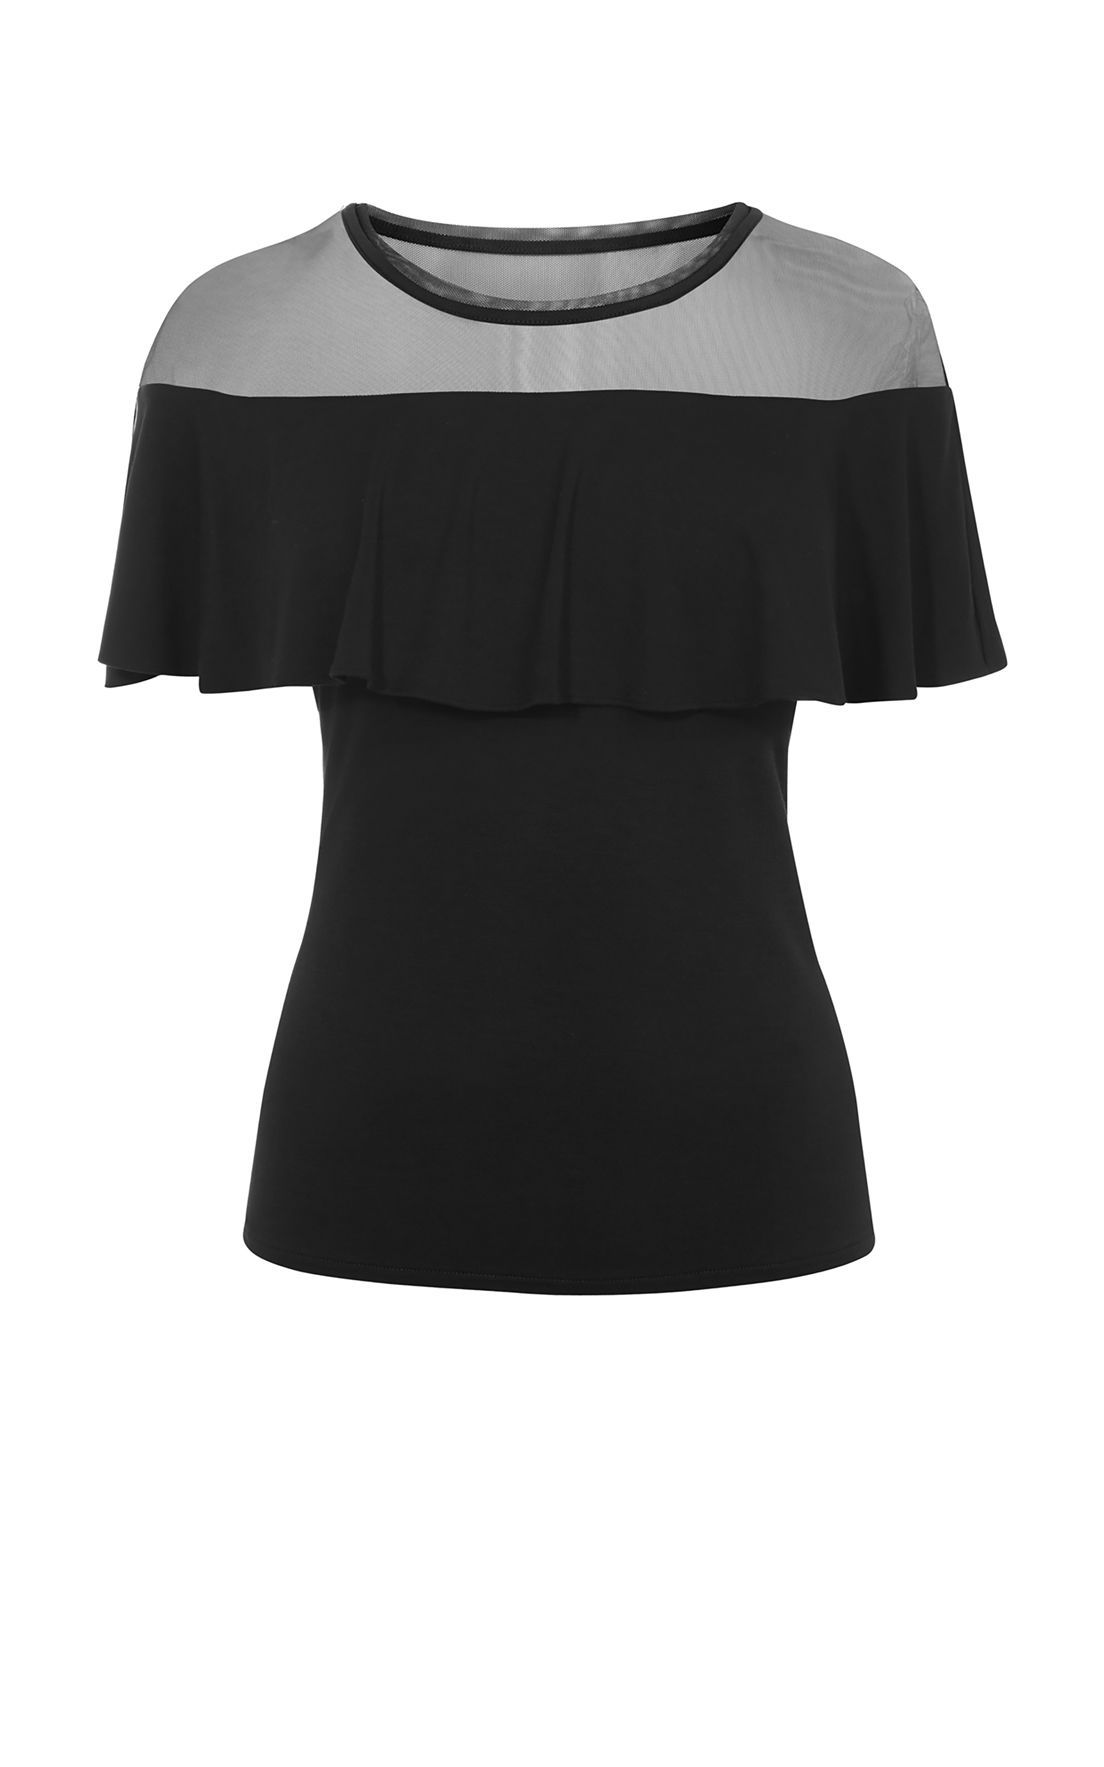 Karen Millen Mesh and Frill Top, Black